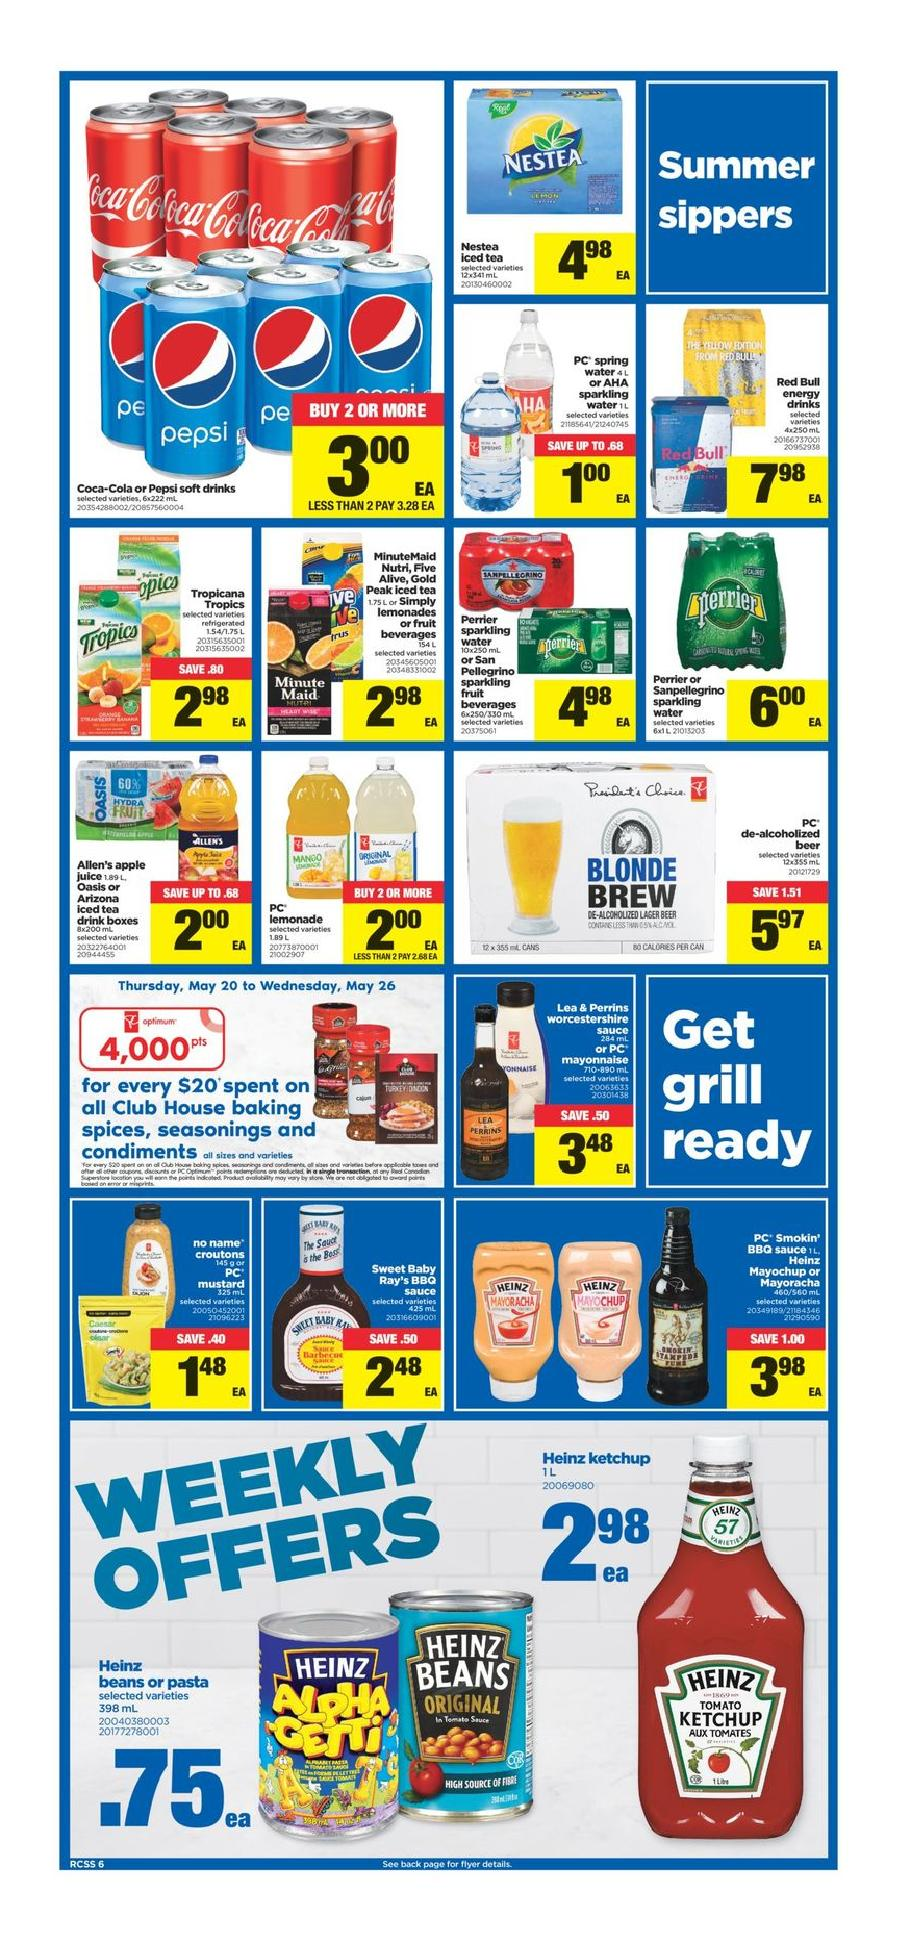 08 Superstore ON Flyer May 20 May 26 2021